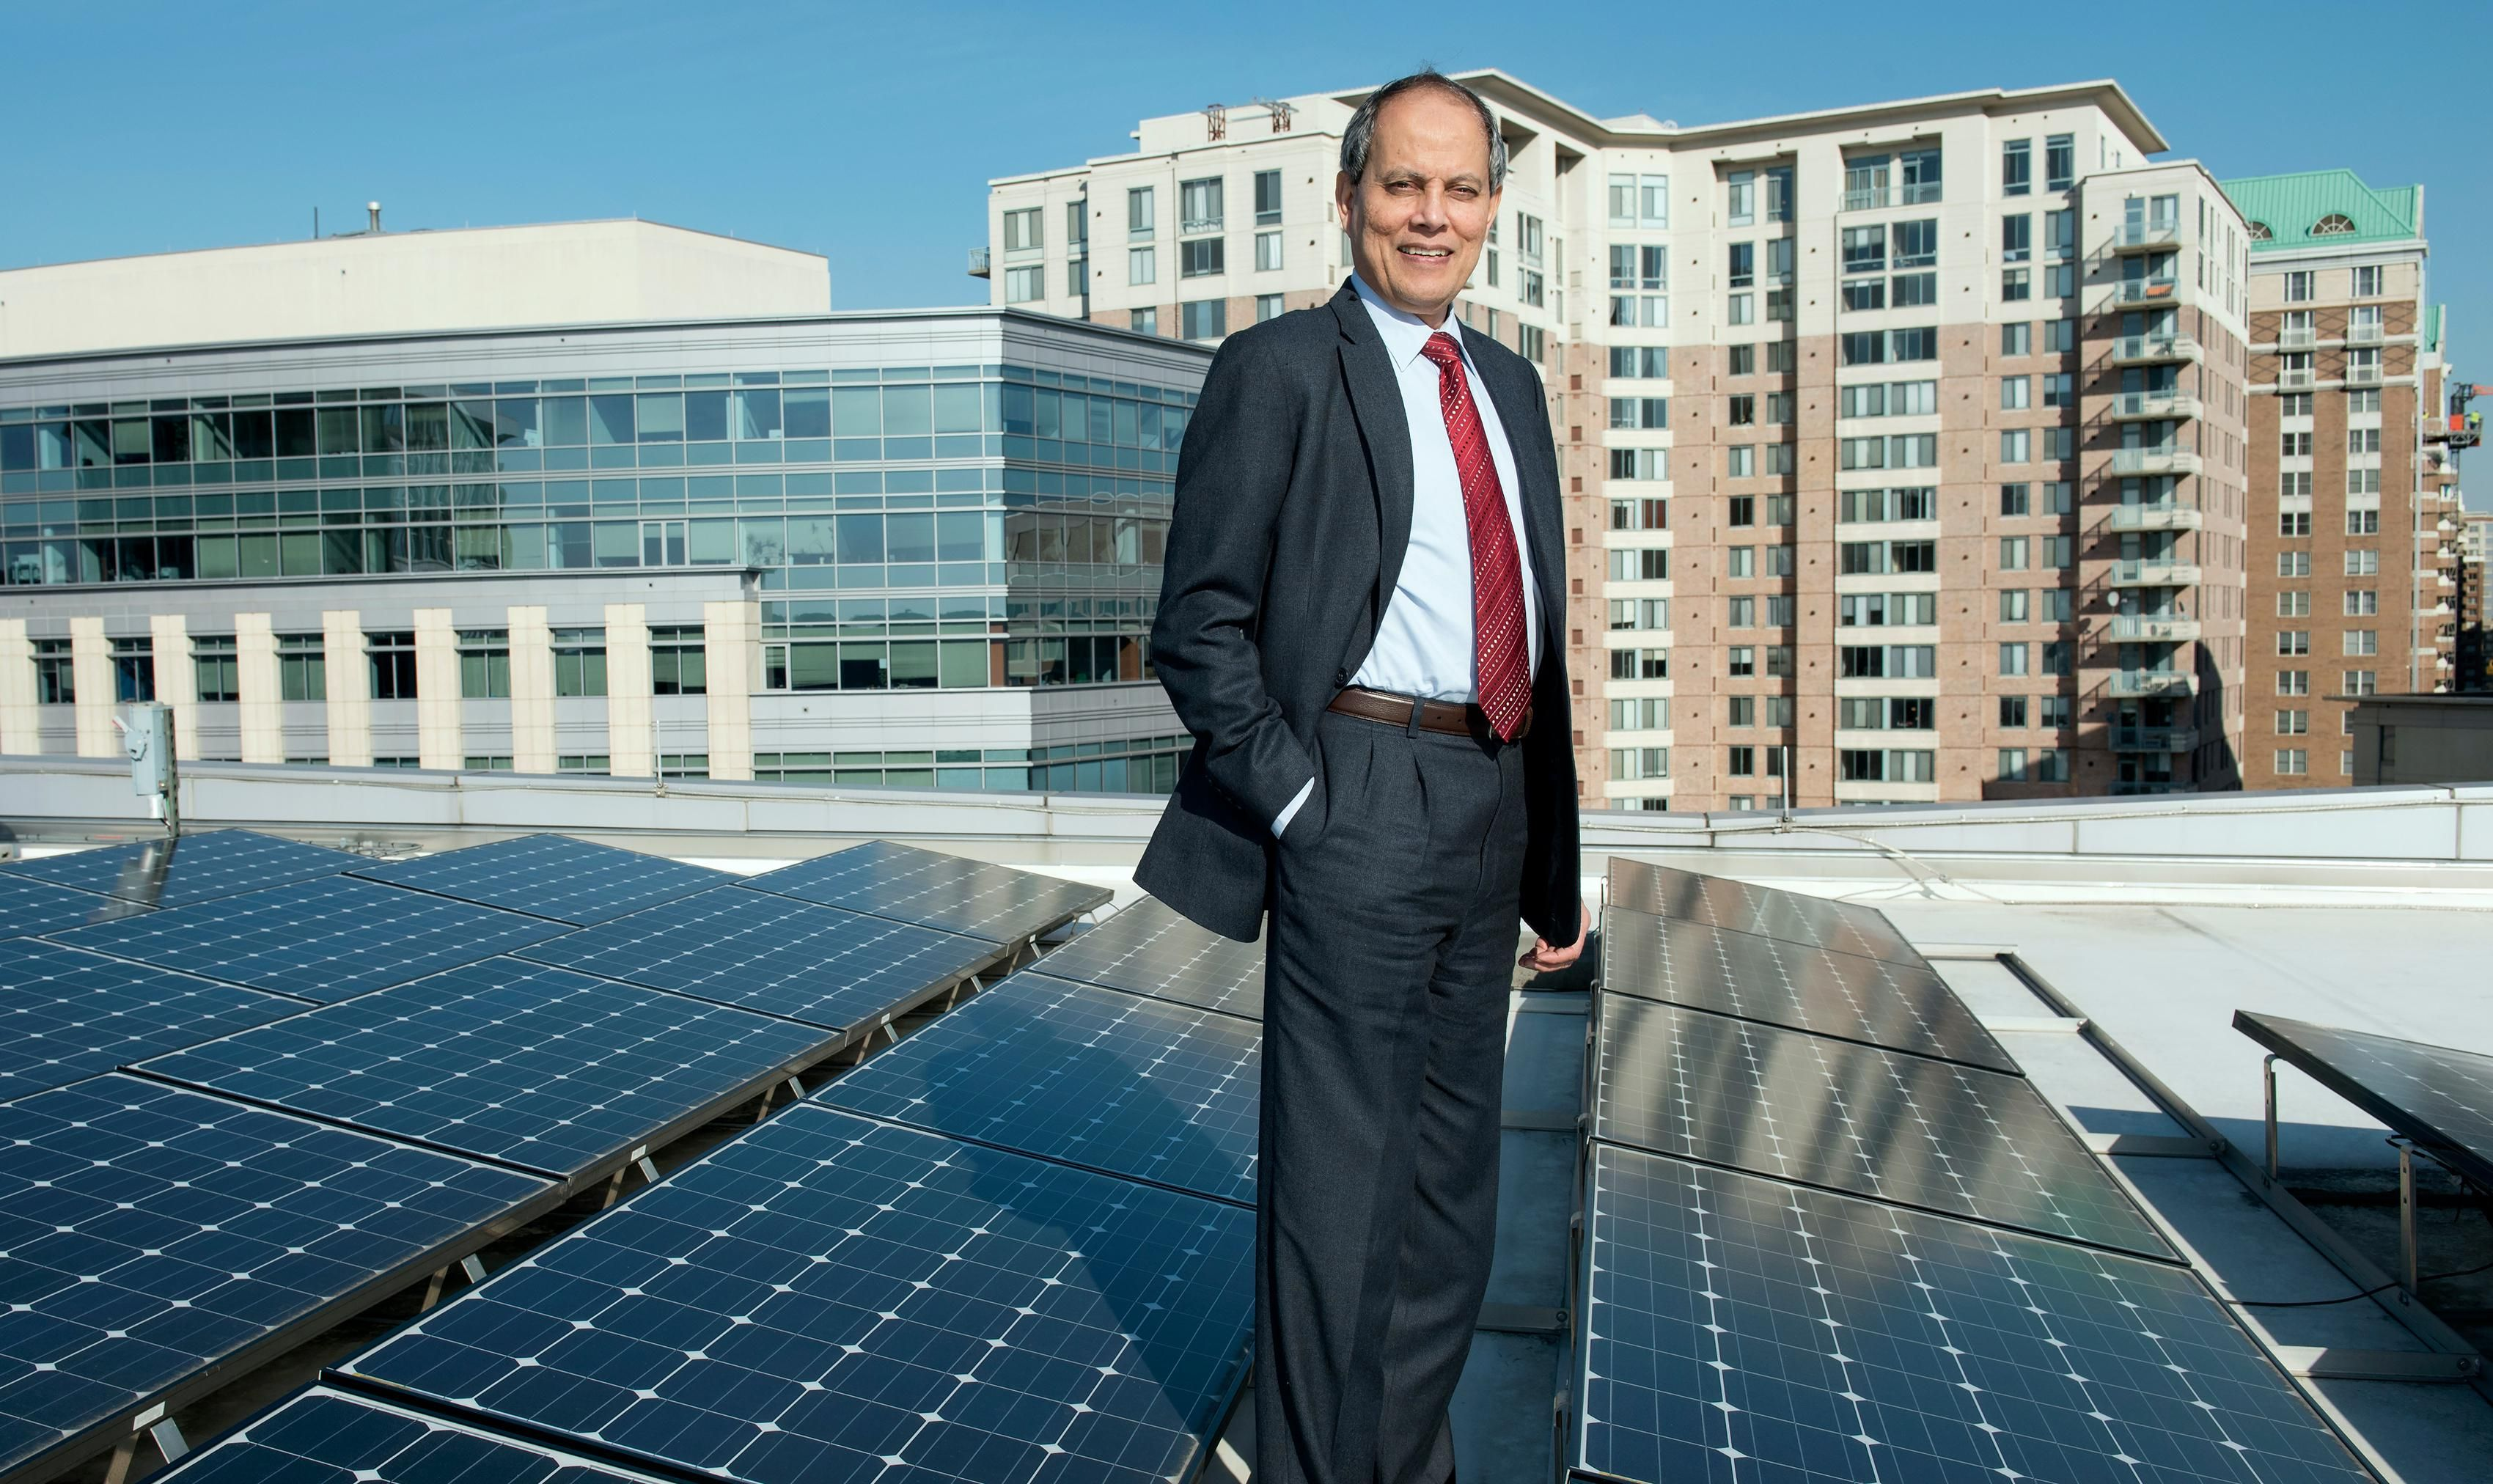 A man in a suit stands amidst a rooftop solar installation, with buildings behind him.